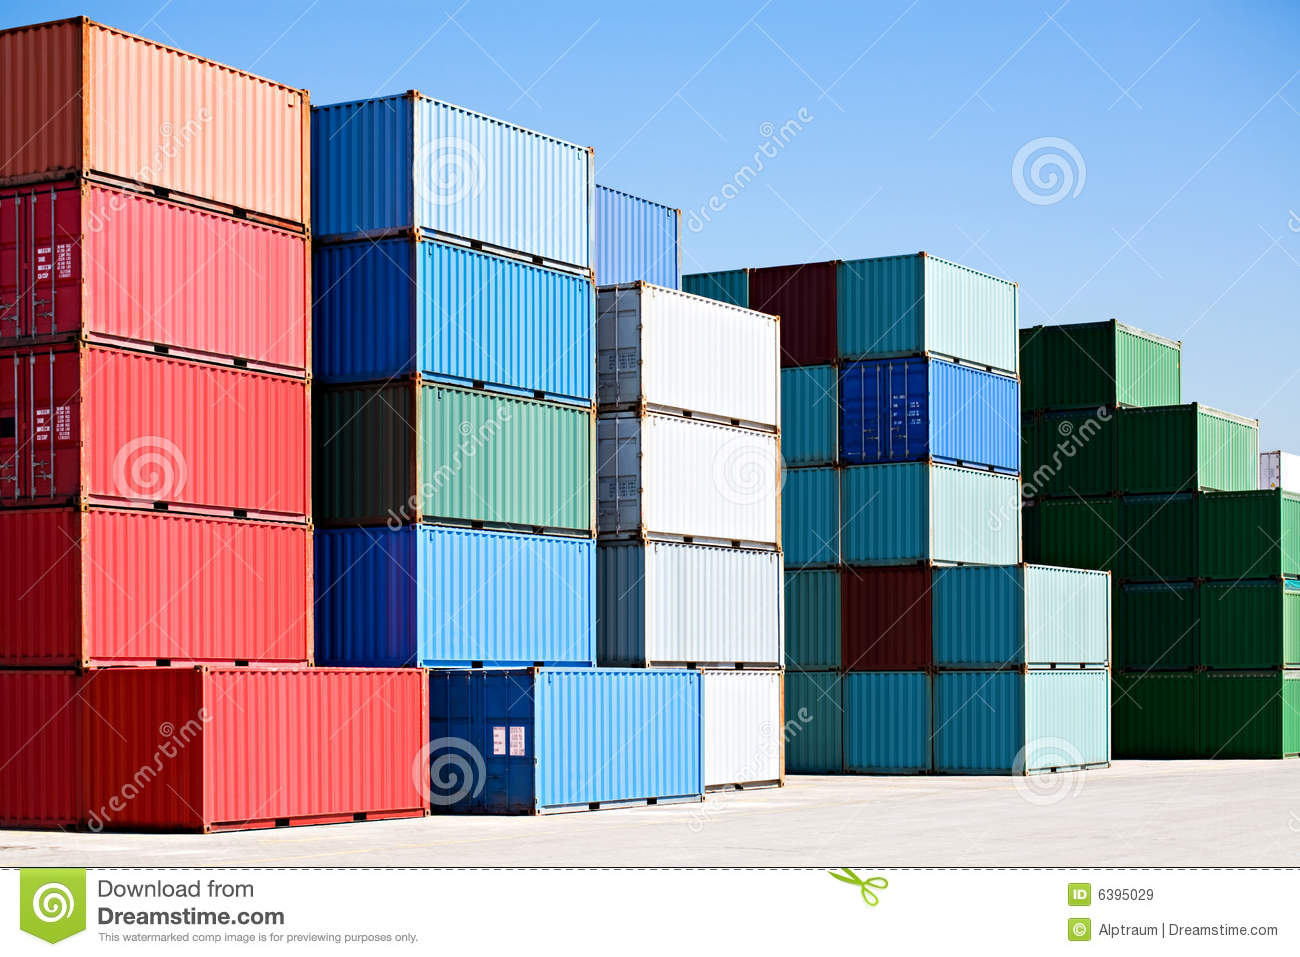 Cargo freight containers at harbor terminal